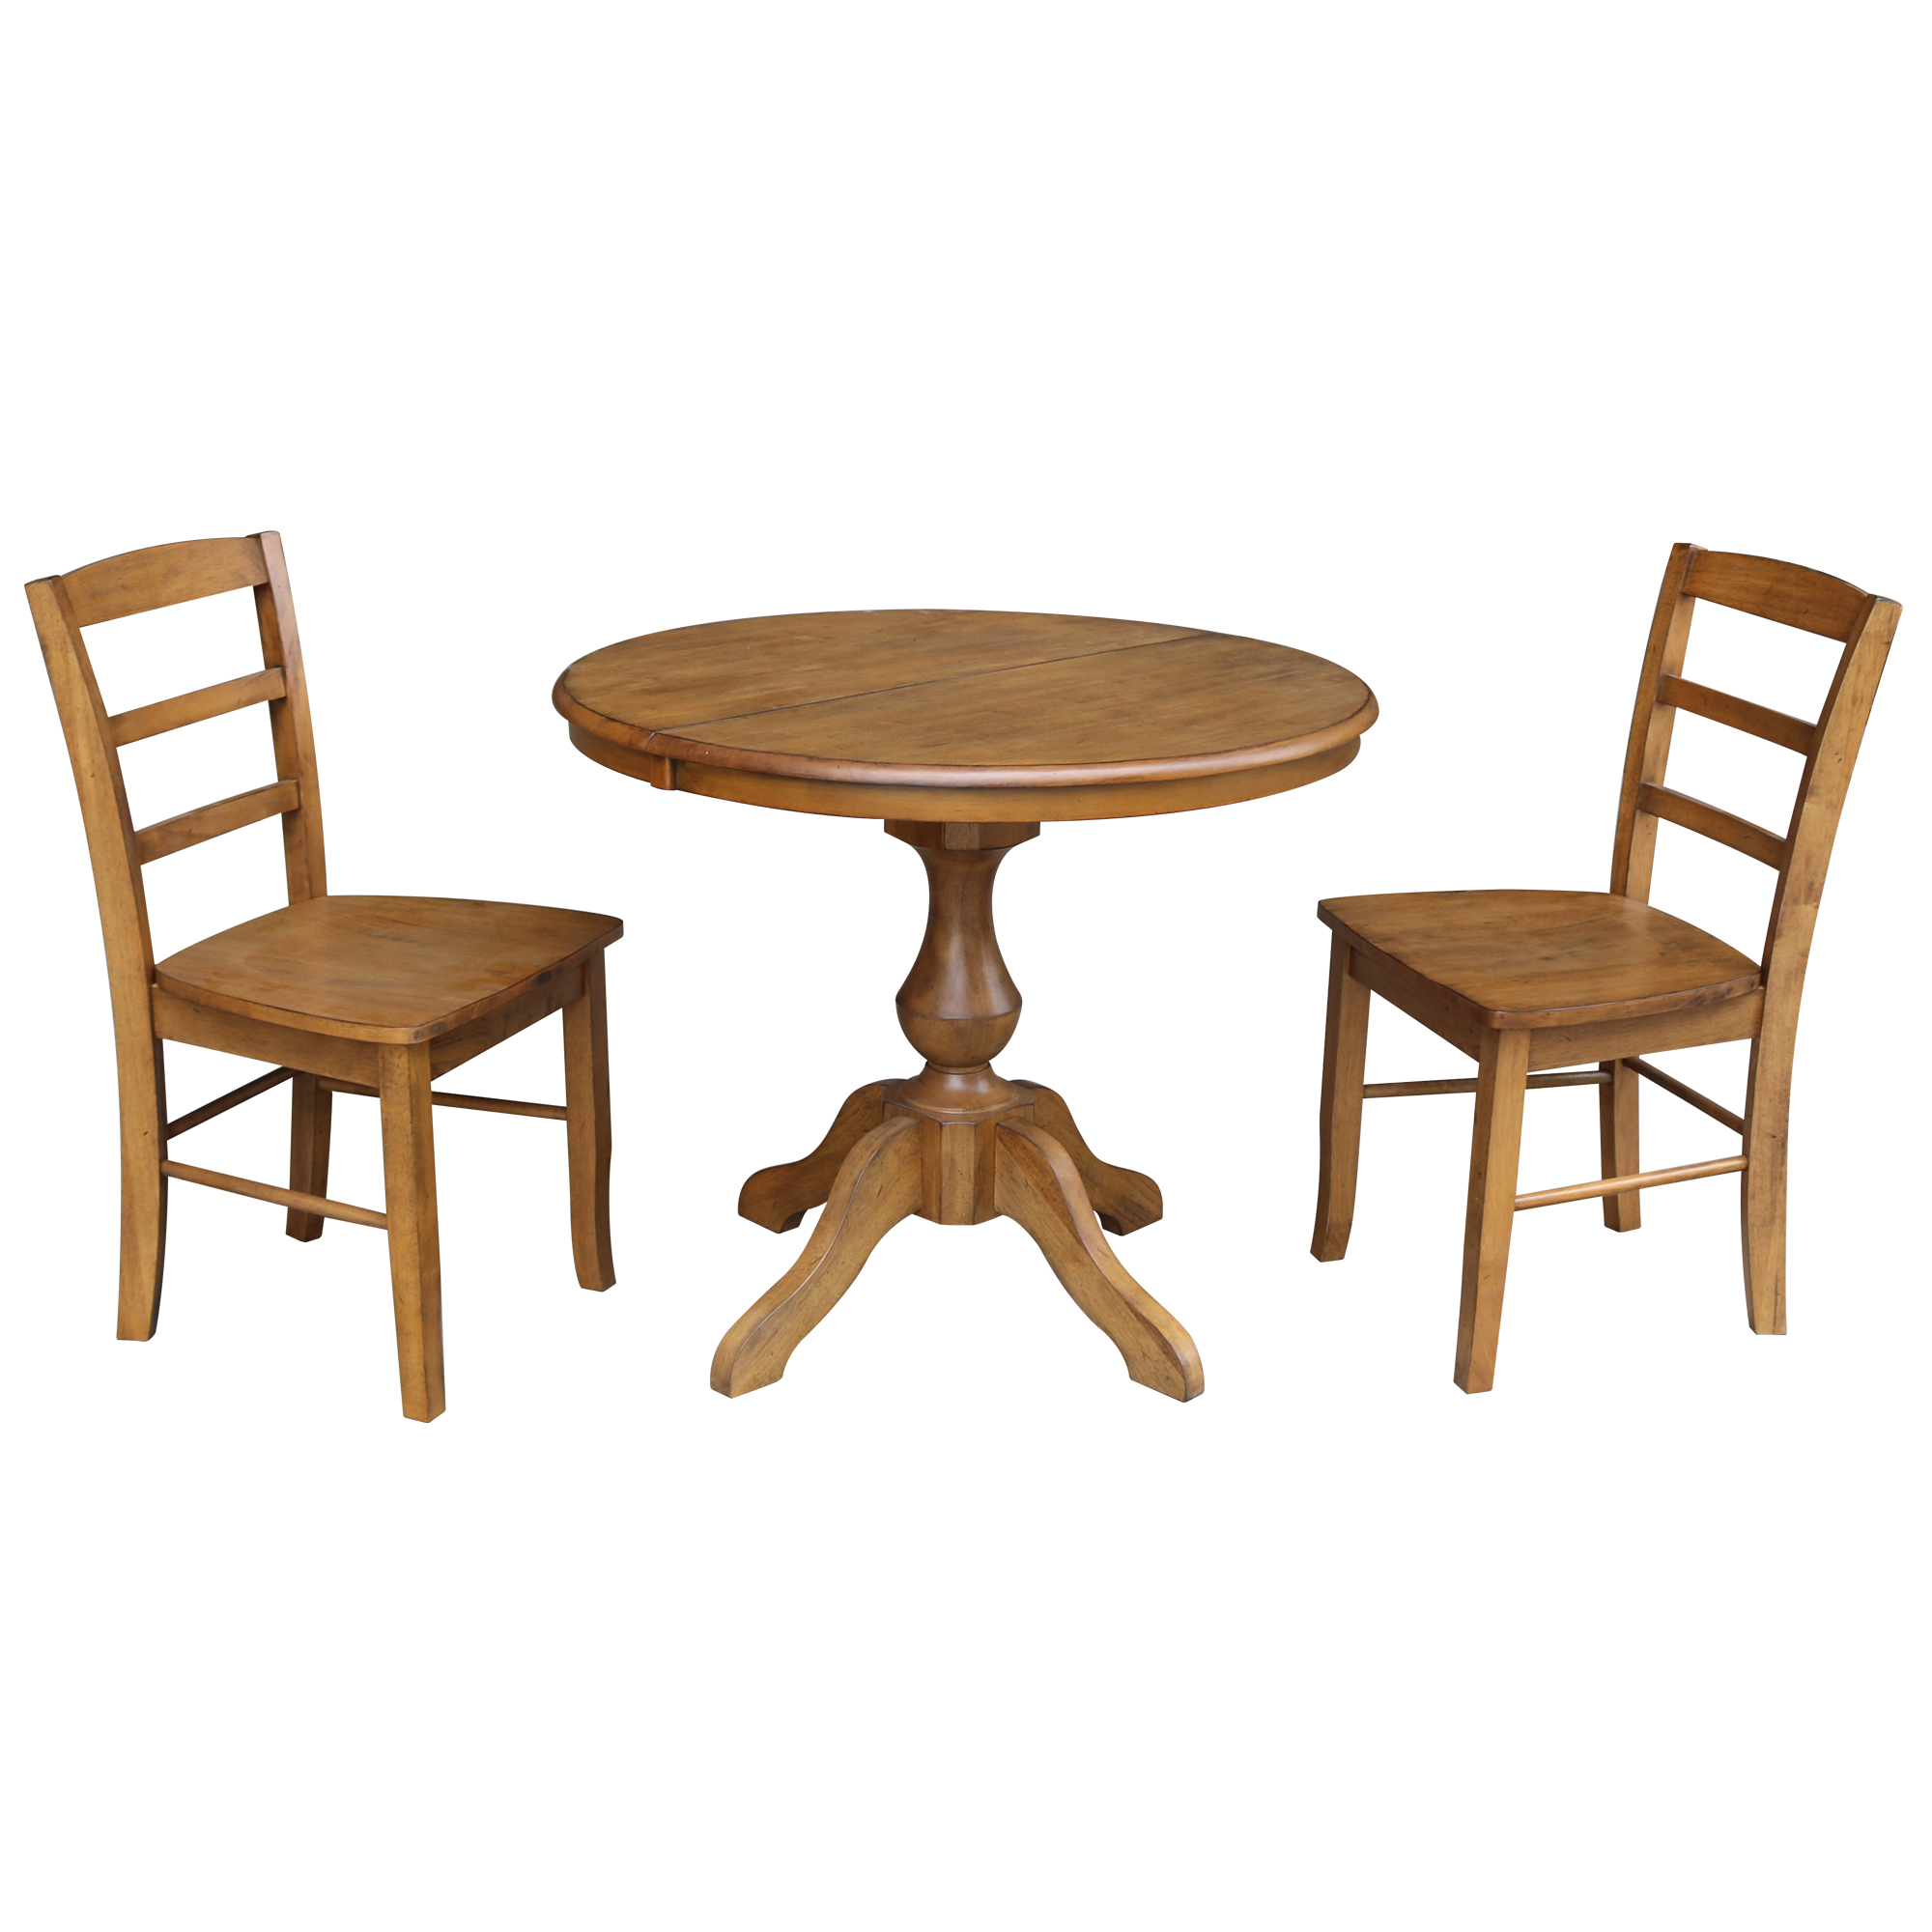 Picture of: 36 Round Dining Table With 12 Leaf And 2 Madrid Chairs Pecan 3 Piece Set Walmart Com Walmart Com